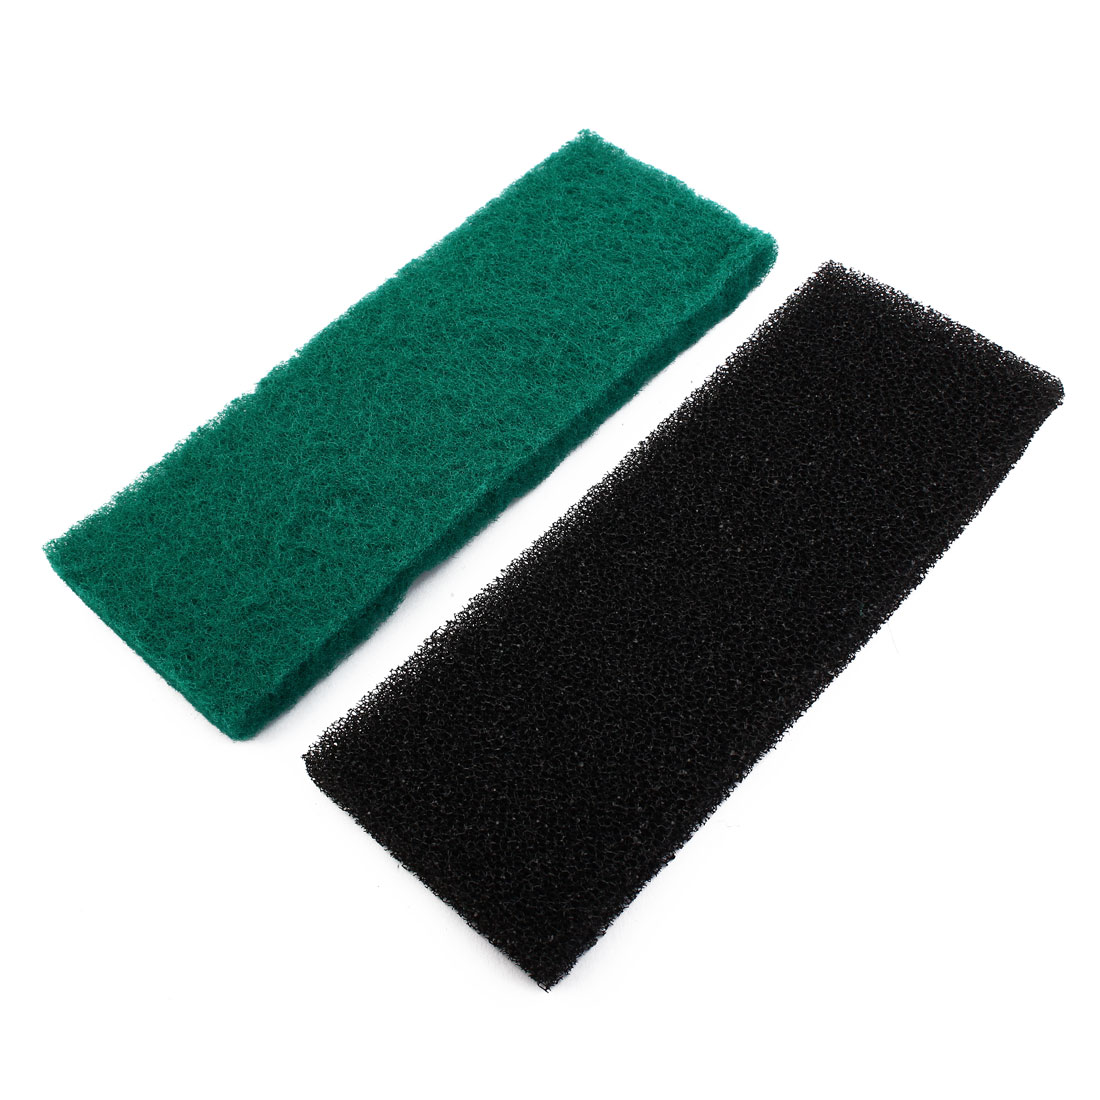 2pcs Black Green Rectangular Water Filtration Biochemical Air Filter Sponge for Aquarium Fish Tank